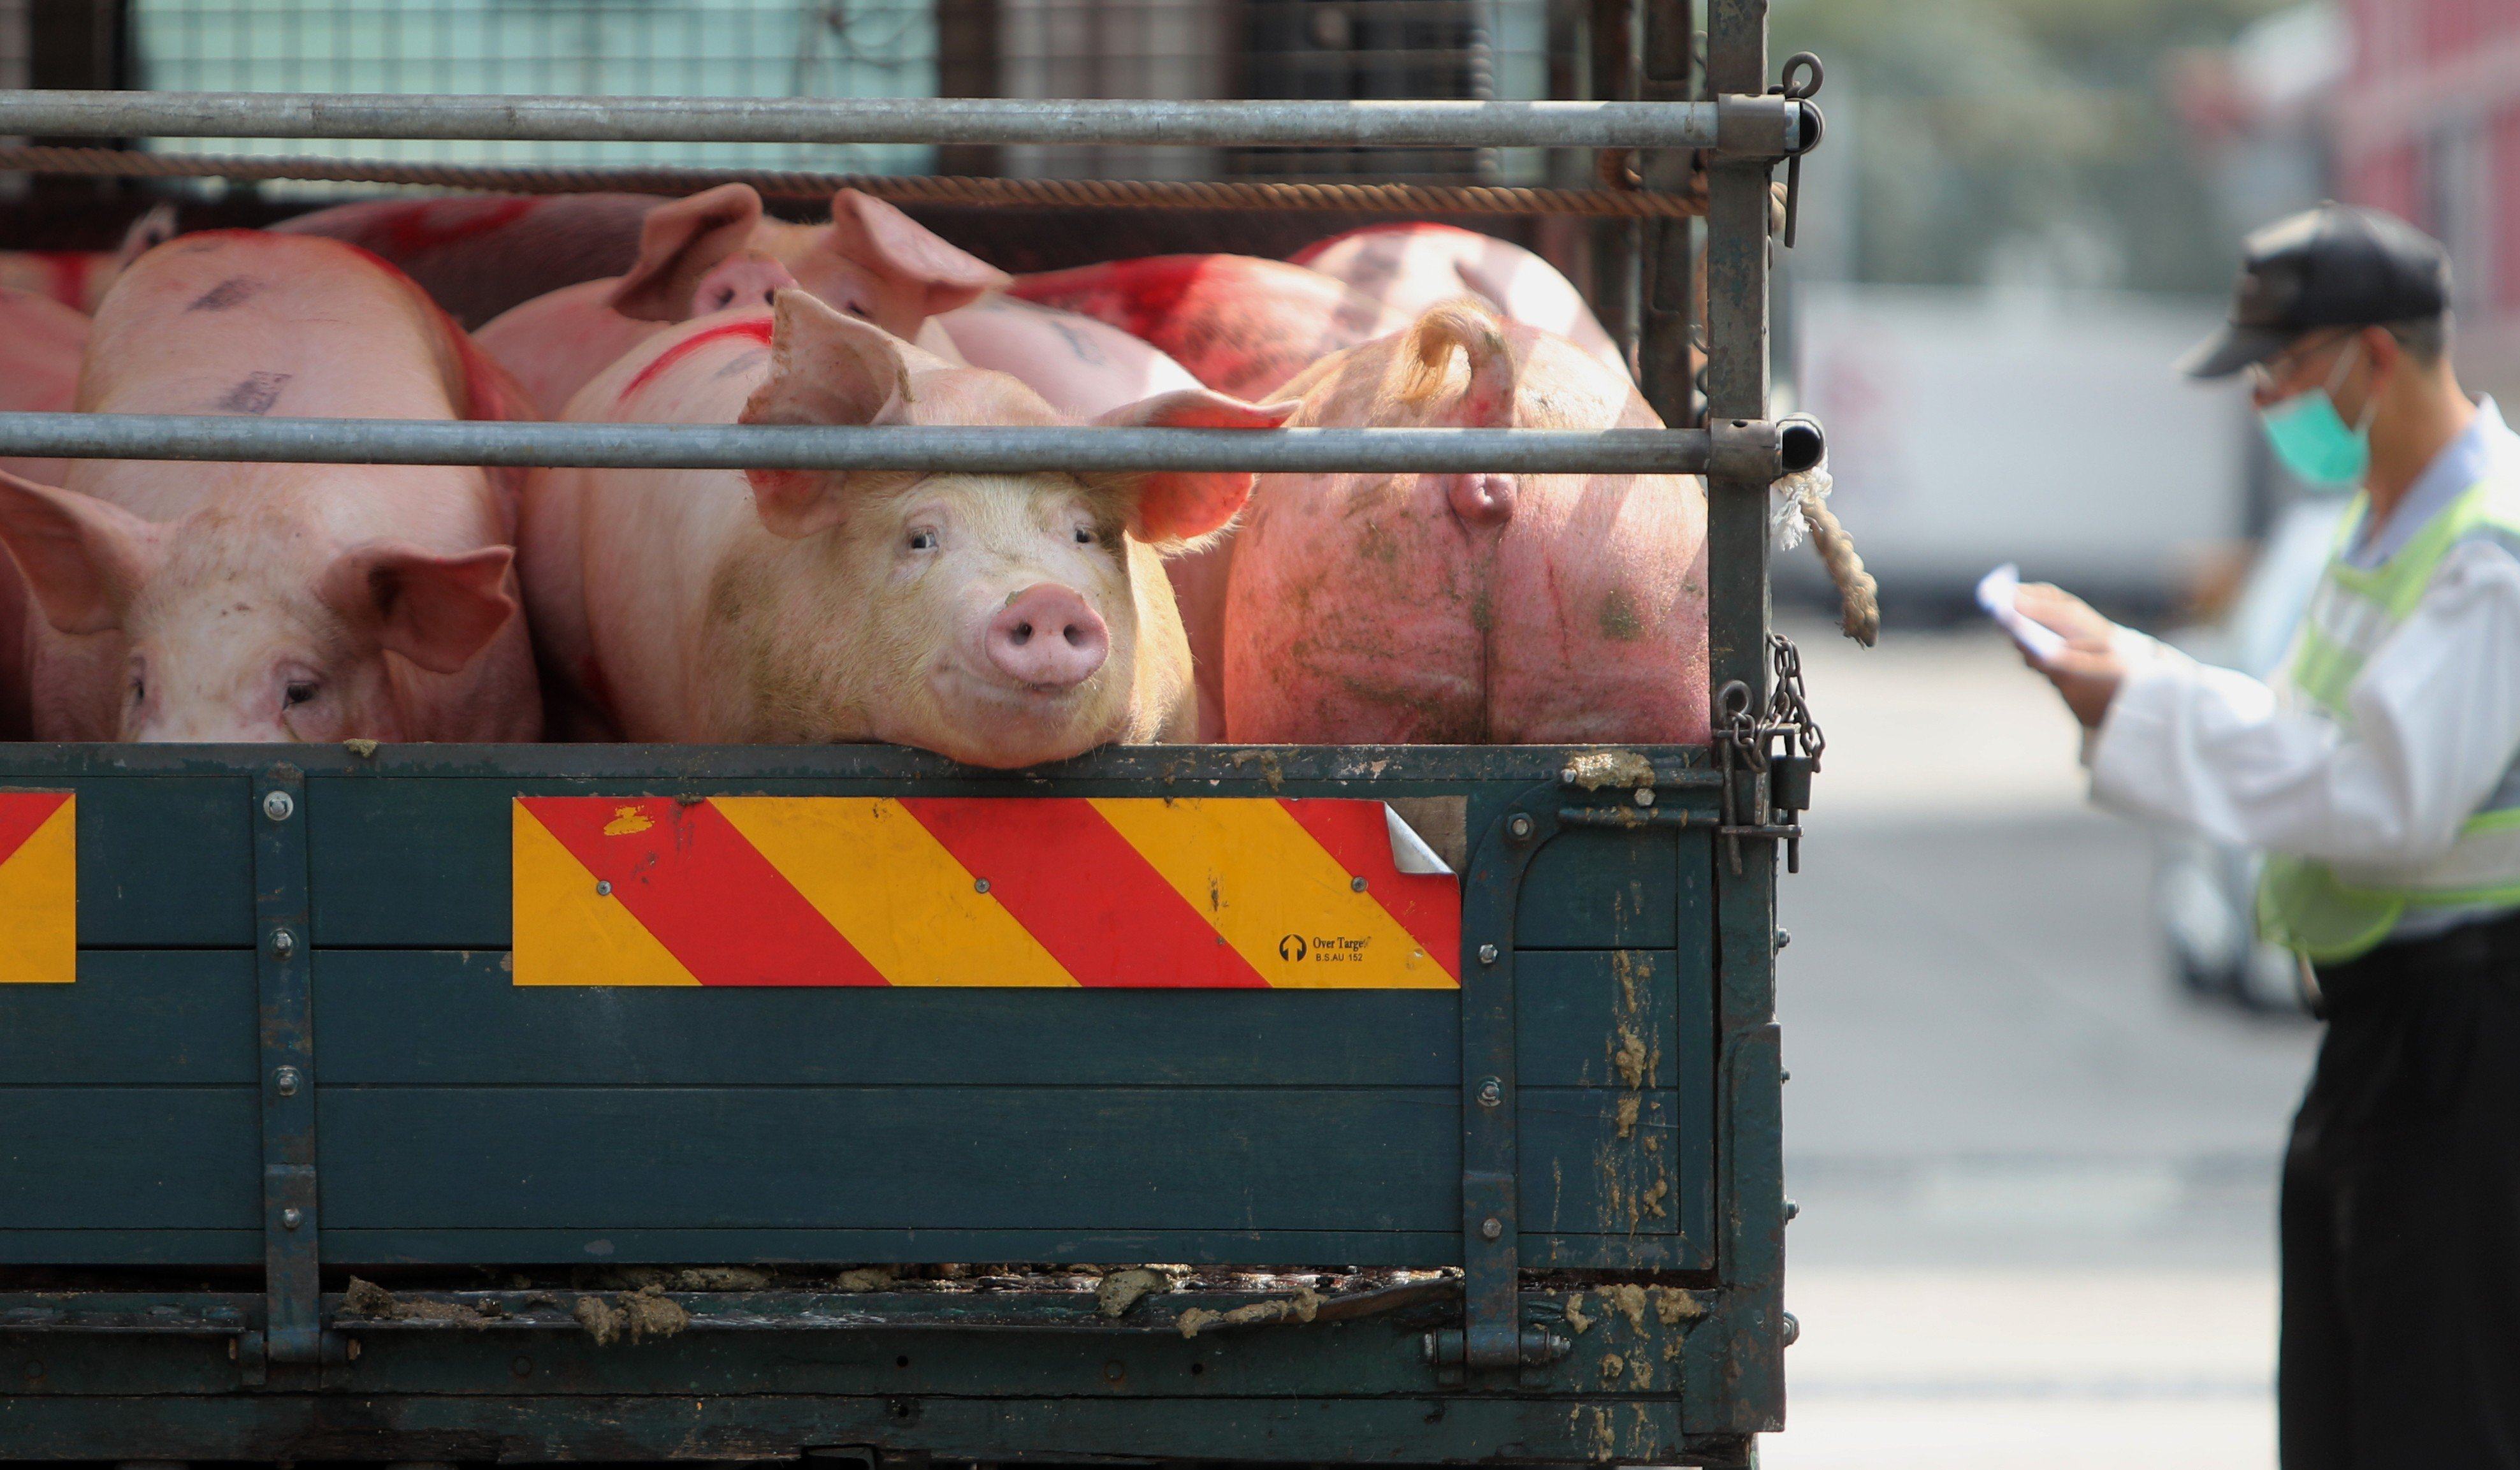 Some 30 per cent of pig farms in mainland China rumoured to